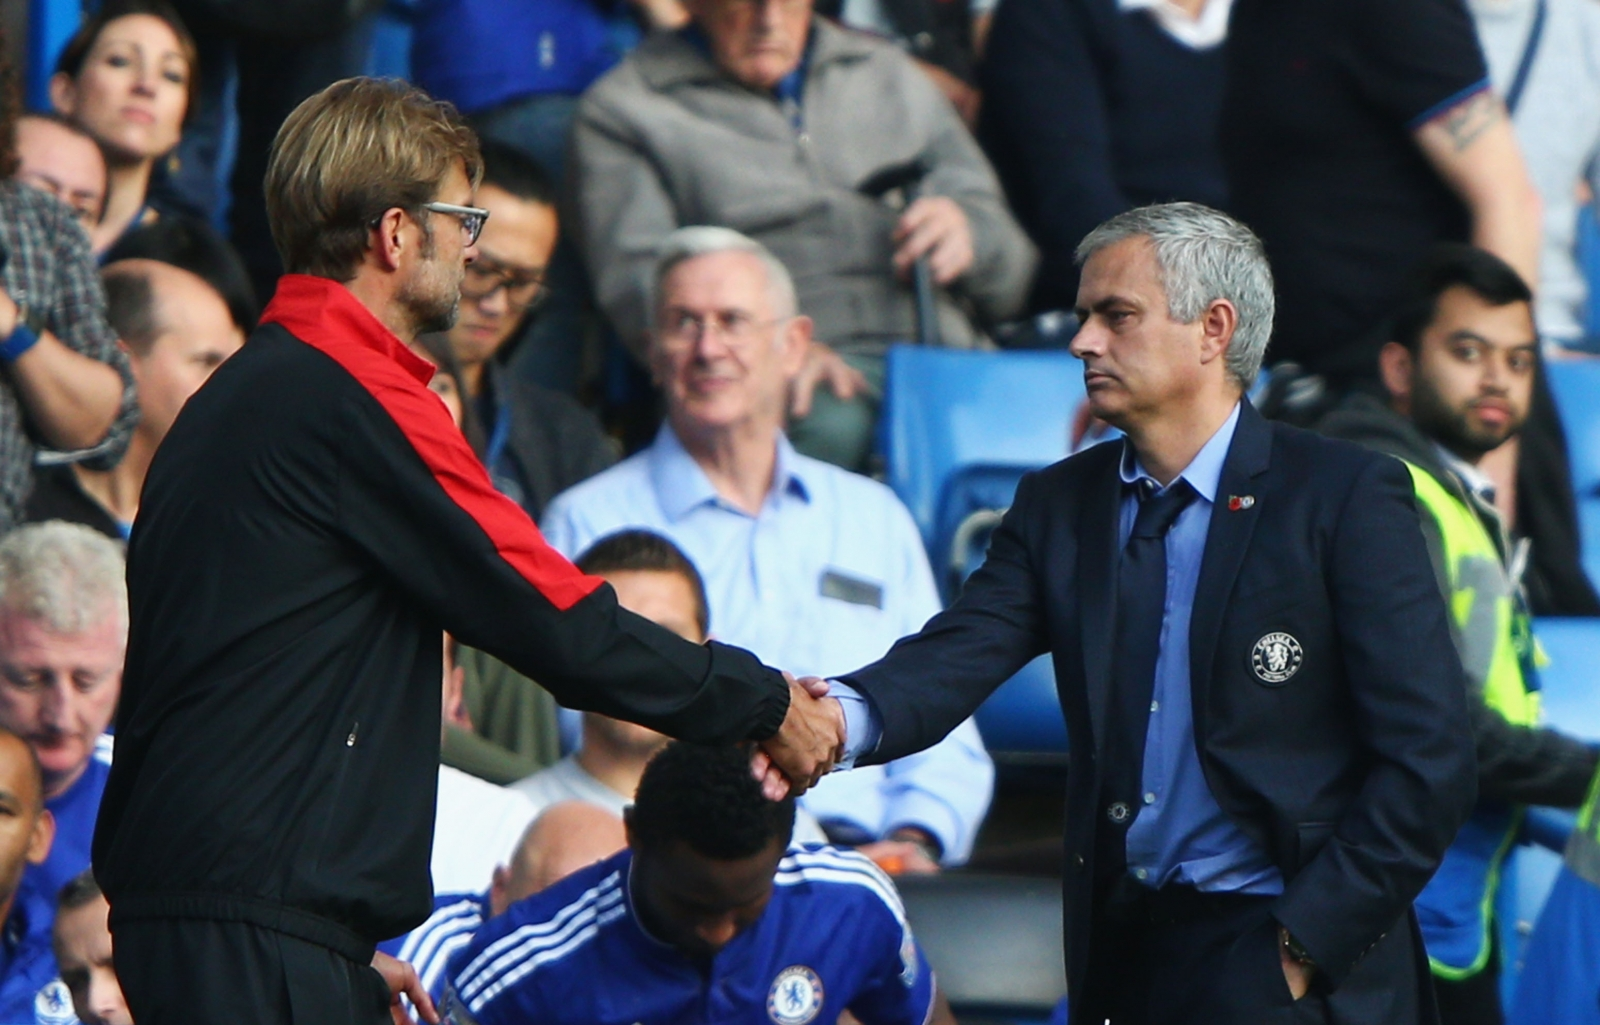 Liverpool vs Man Utd: Klopp and Mourinho reflect on disappointing 0-0 draw